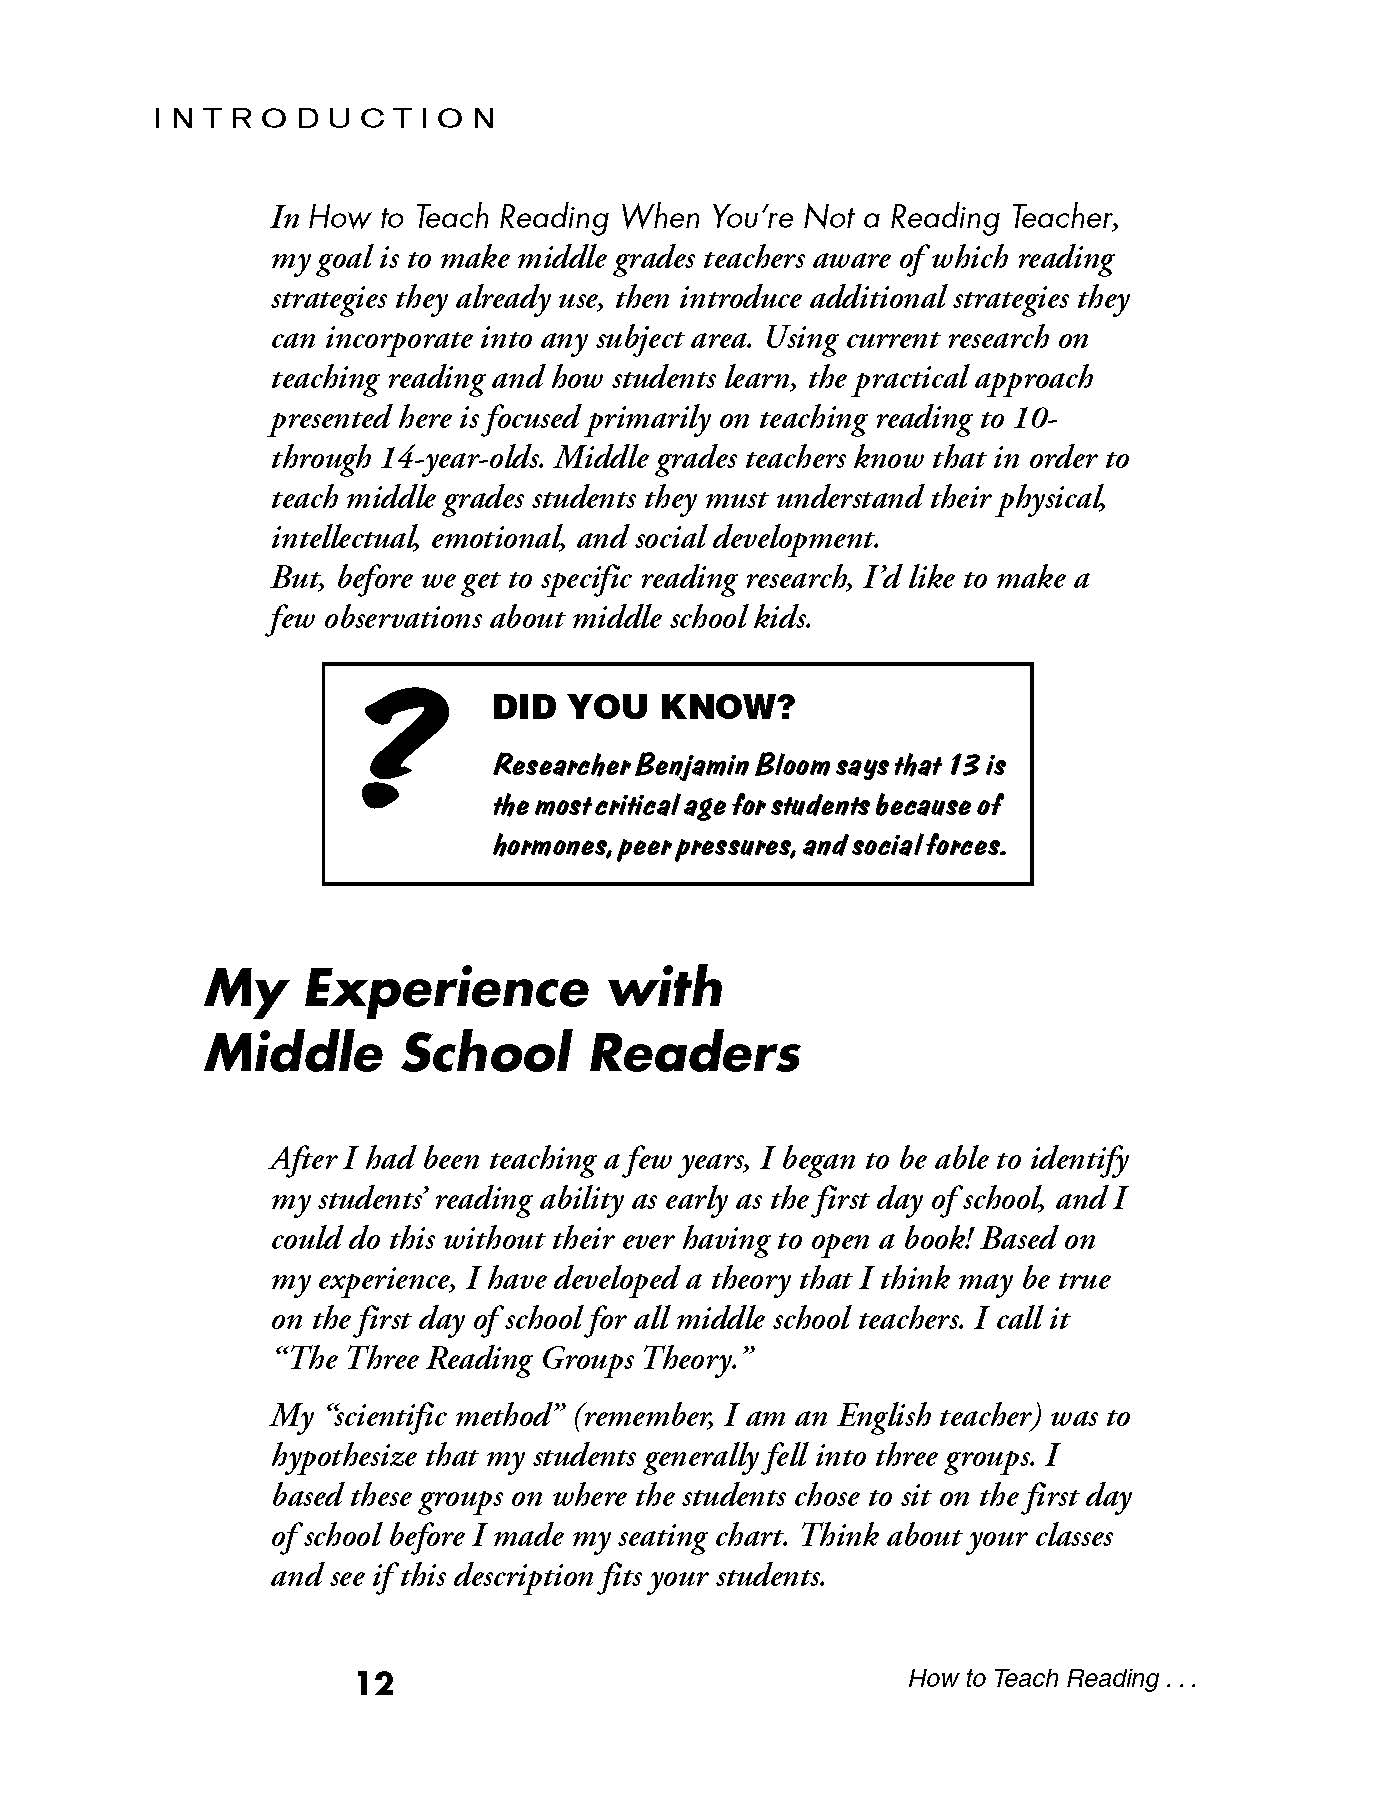 images How to Teach Reading